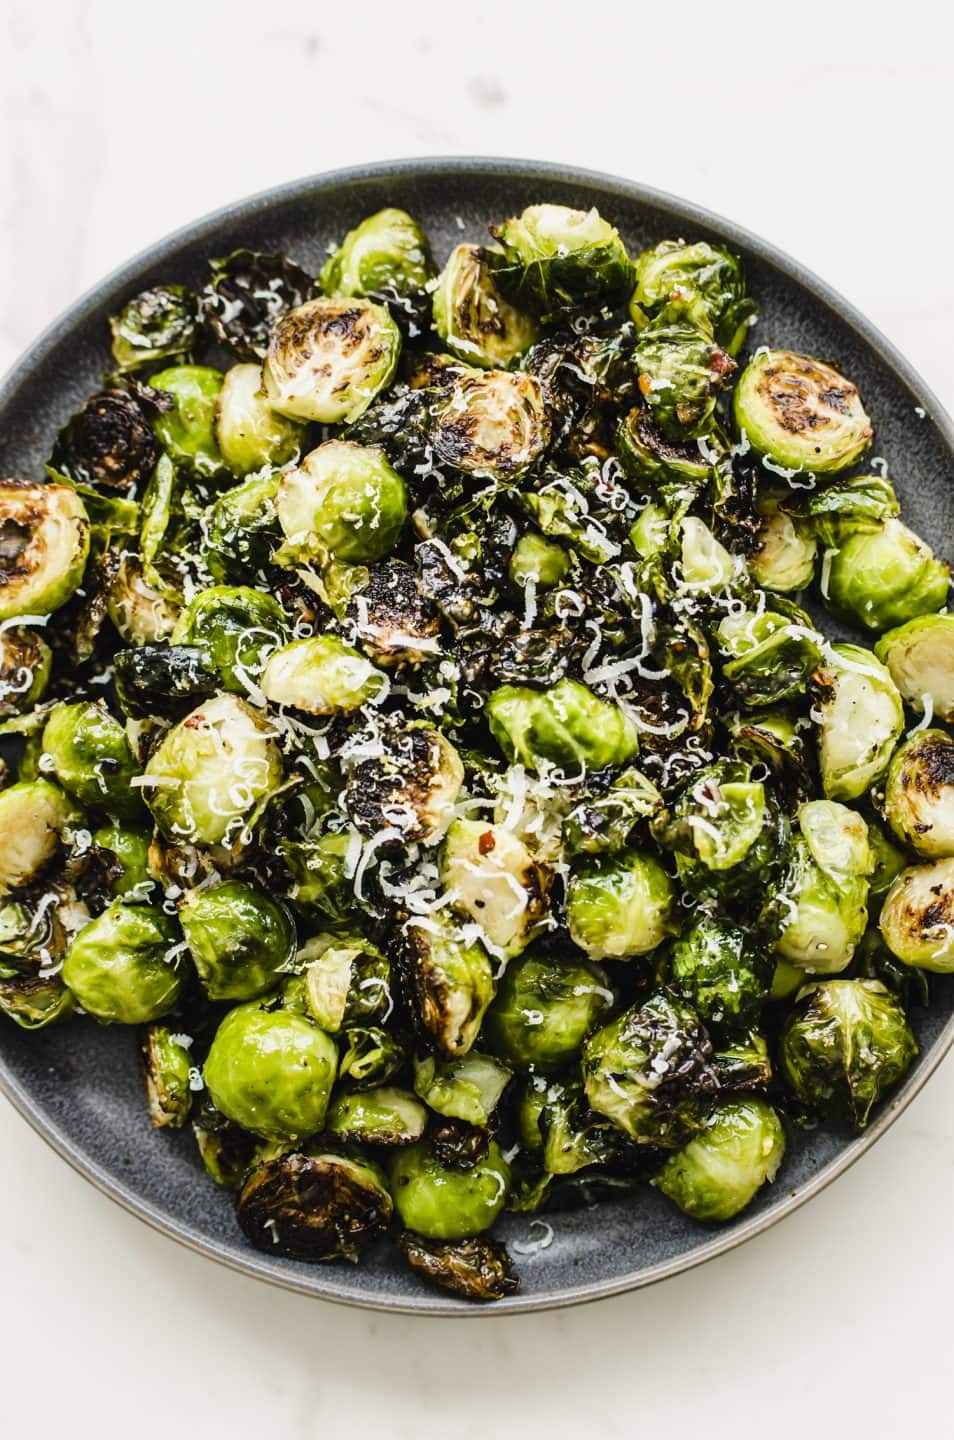 An overhead shot of a plate of crispy roasted Brussels sprouts.